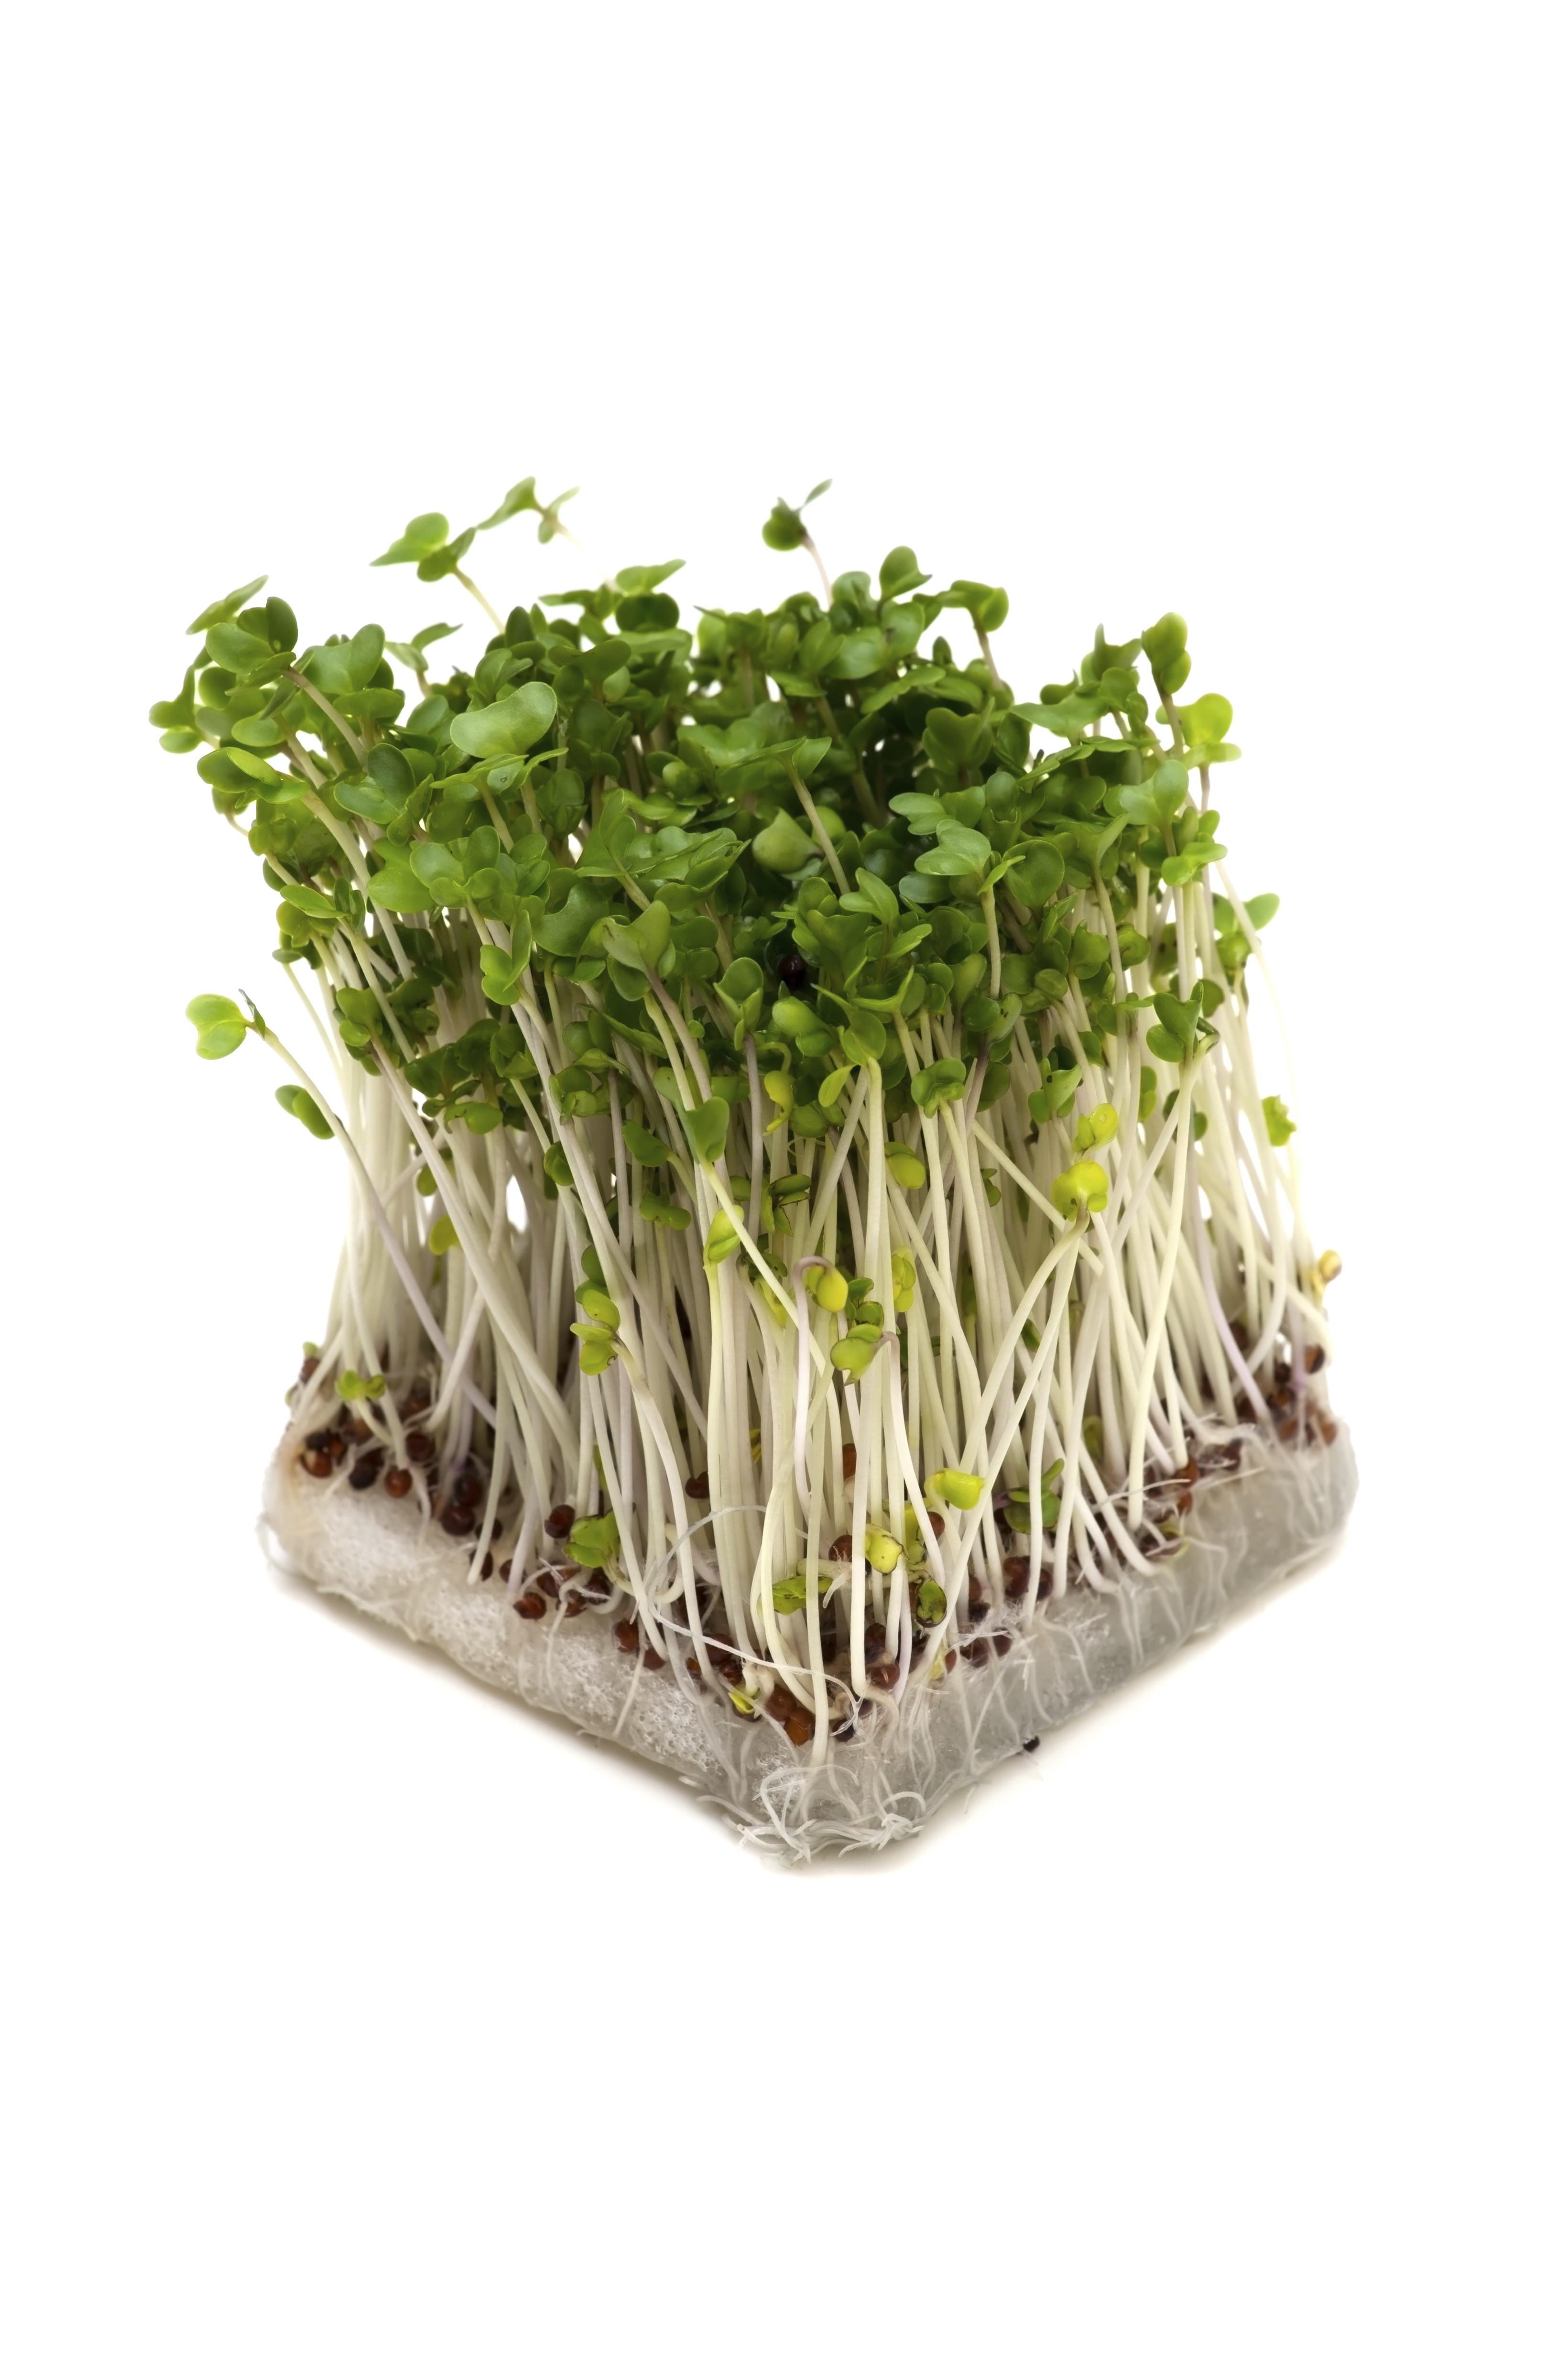 Chemical In Broccoli Sprouts May Treat >> Can A Broccoli Sprout Pill Fight Cancer